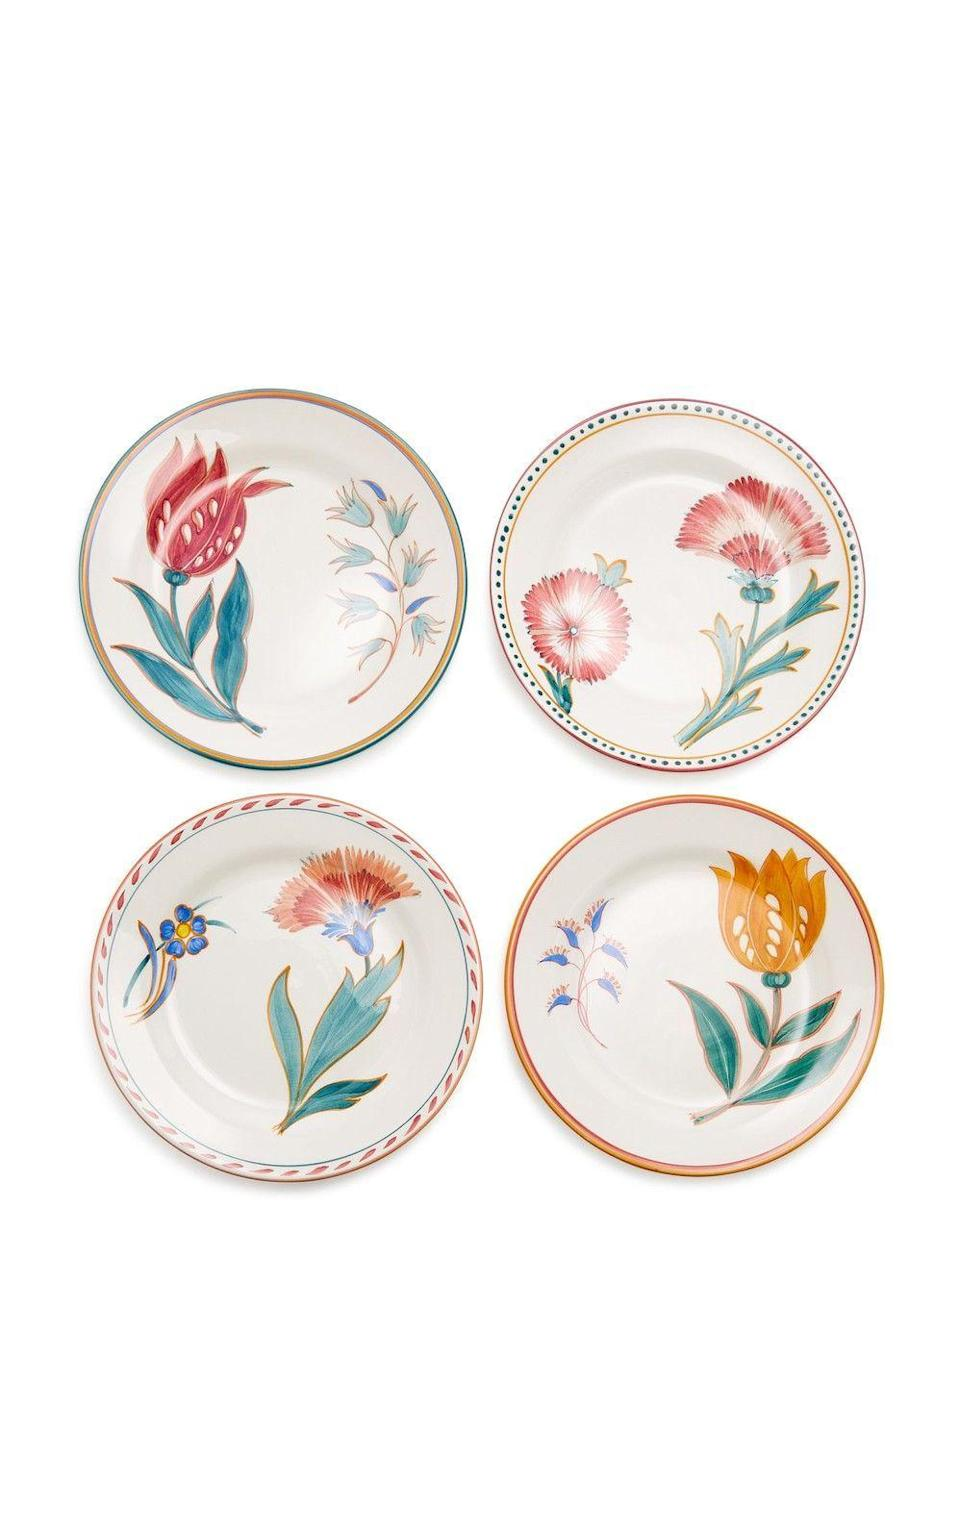 """<p><strong>Augarten Wien</strong></p><p>modaoperandi.com</p><p><strong>$370.00</strong></p><p><a href=""""https://go.redirectingat.com?id=74968X1596630&url=https%3A%2F%2Fwww.modaoperandi.com%2Faugarten-wien-gg18%2Fset-of-four-porcelain-dessert-plates&sref=https%3A%2F%2Fwww.harpersbazaar.com%2Fwedding%2Fplanning%2Fg33647953%2Ffourth-anniversary-gift-ideas%2F"""" rel=""""nofollow noopener"""" target=""""_blank"""" data-ylk=""""slk:SHOP NOW"""" class=""""link rapid-noclick-resp"""">SHOP NOW</a></p><p>Upgrade your dessert or salad plates with unique floral patterns (like these pictured here) that feel fresh—and mix in well with the settings <a href=""""https://www.harpersbazaar.com/wedding/planning/g33600442/where-to-register-for-wedding/"""" rel=""""nofollow noopener"""" target=""""_blank"""" data-ylk=""""slk:you registered for"""" class=""""link rapid-noclick-resp"""">you registered for</a>. </p>"""